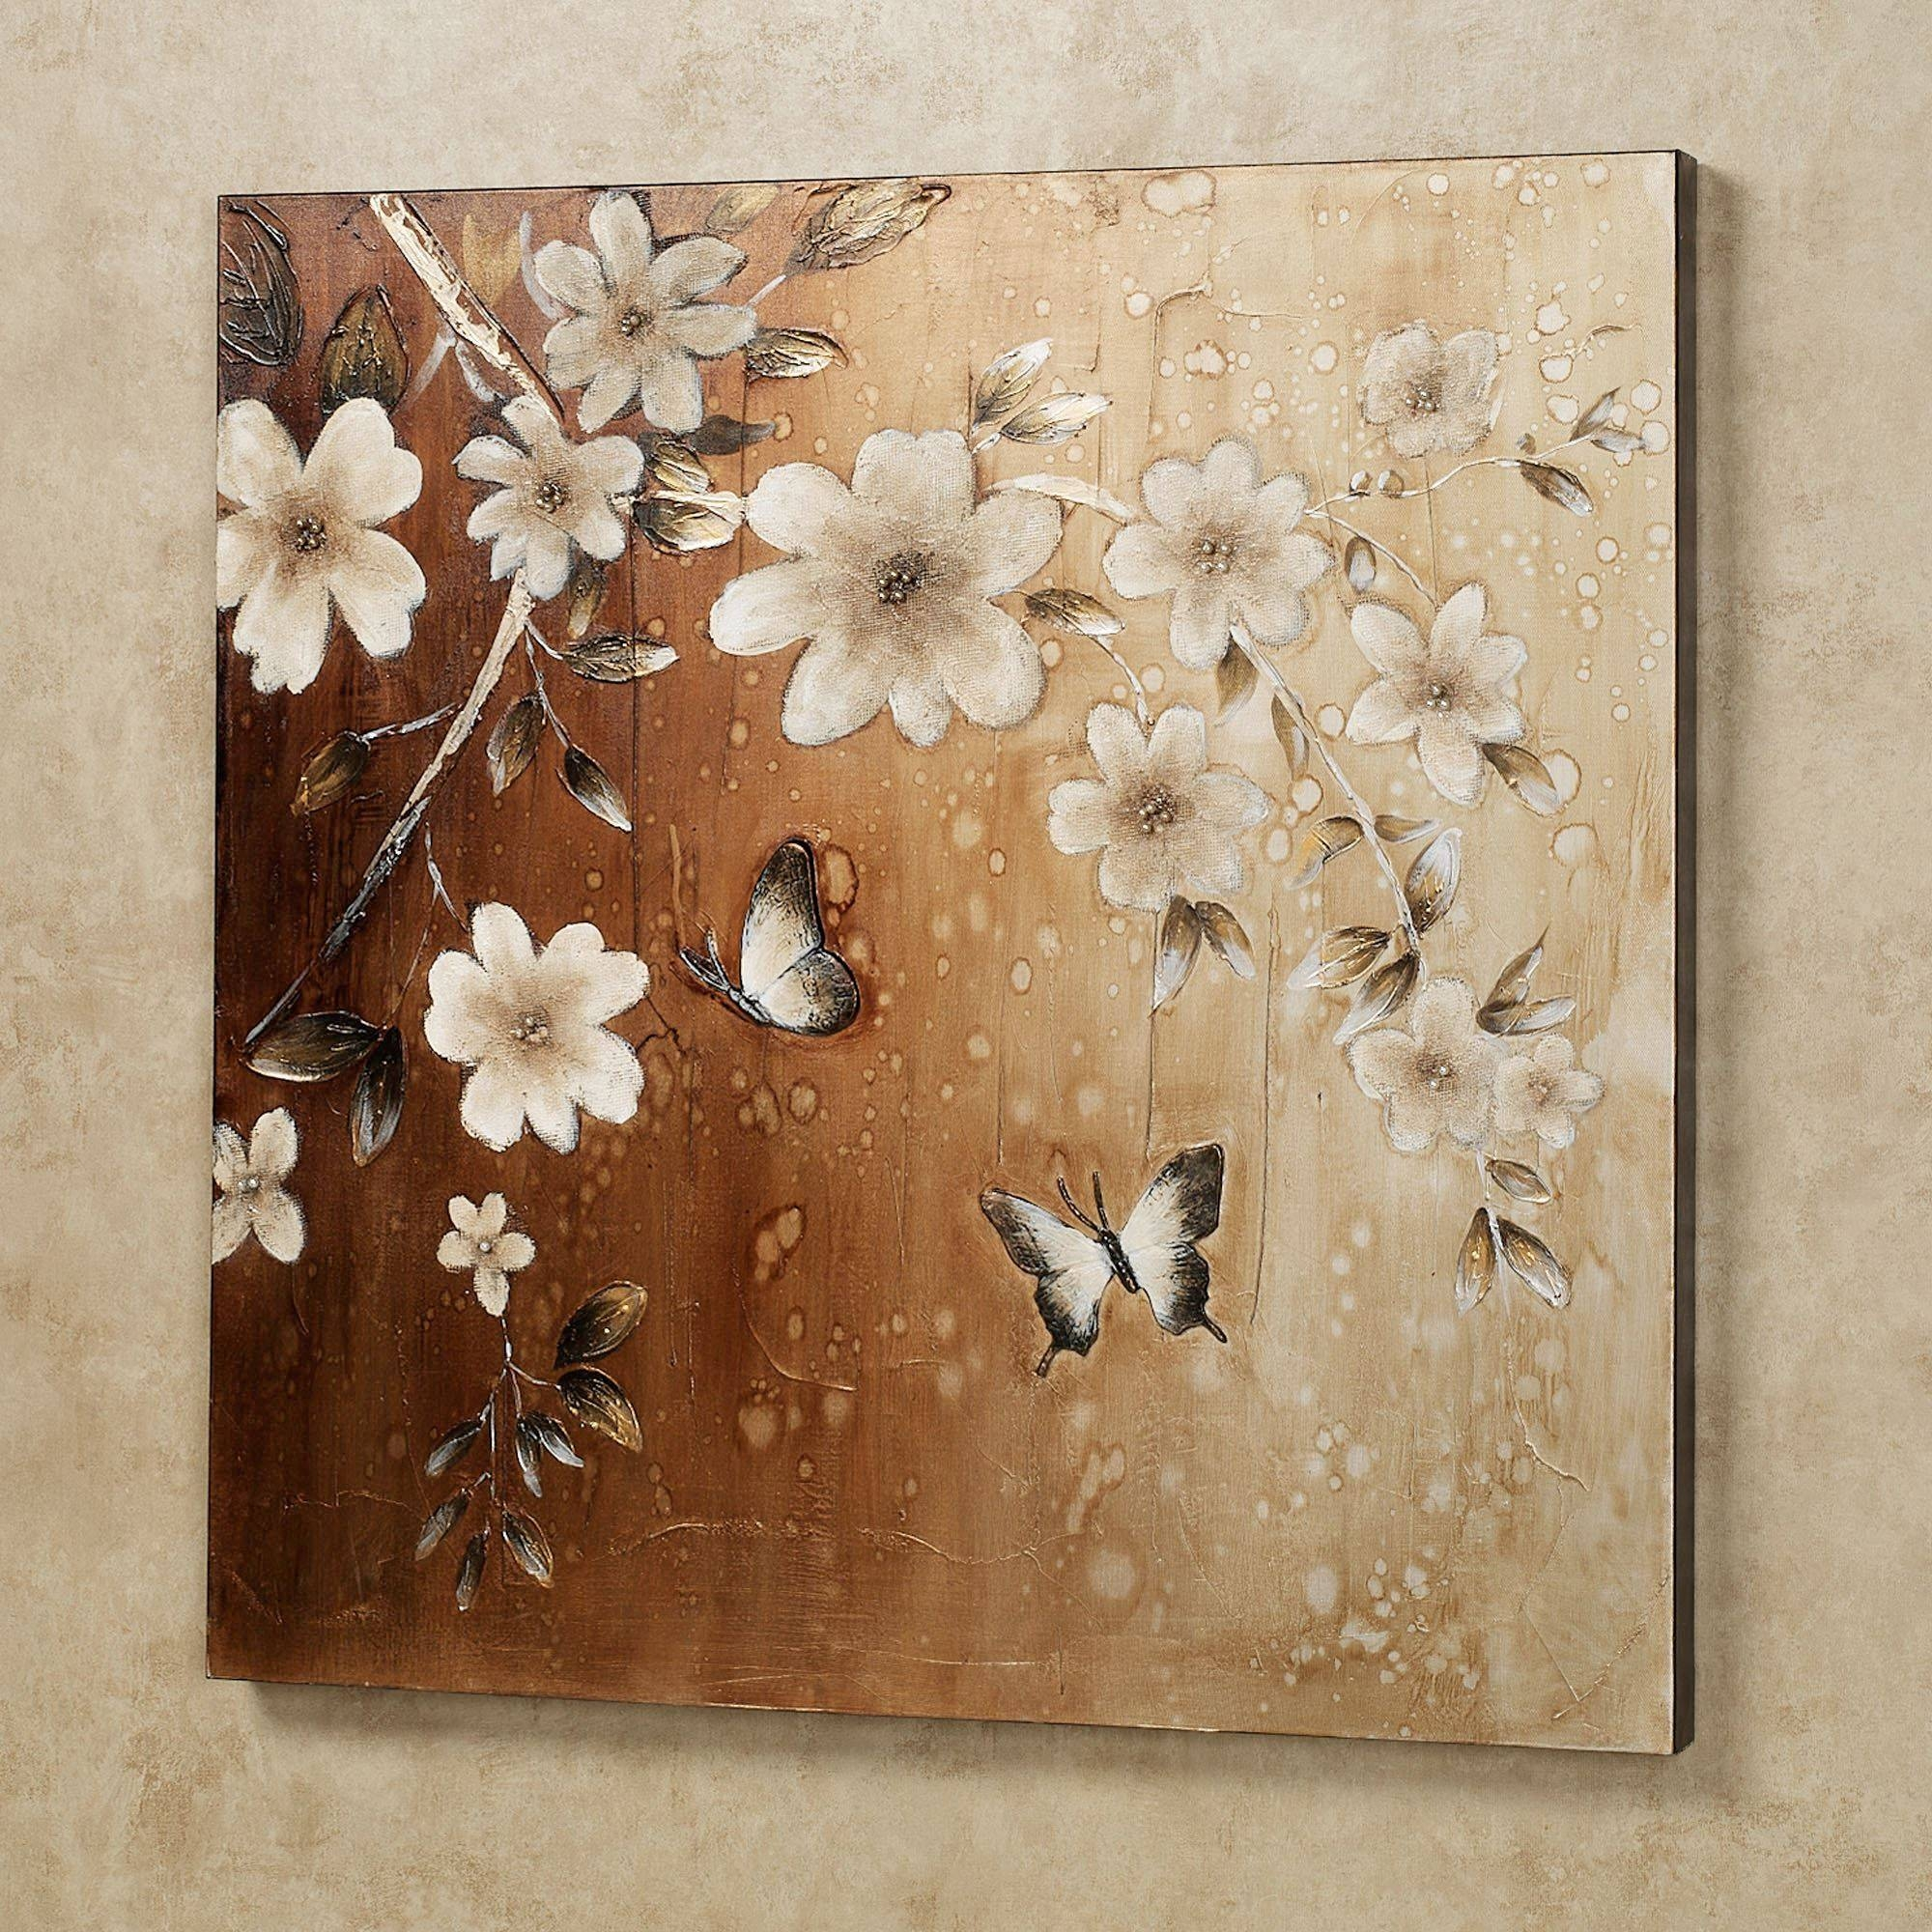 Midday Sun Butterfly Floral Canvas Wall Art Pertaining To Most Recent Floral Wall Art Canvas (View 4 of 20)